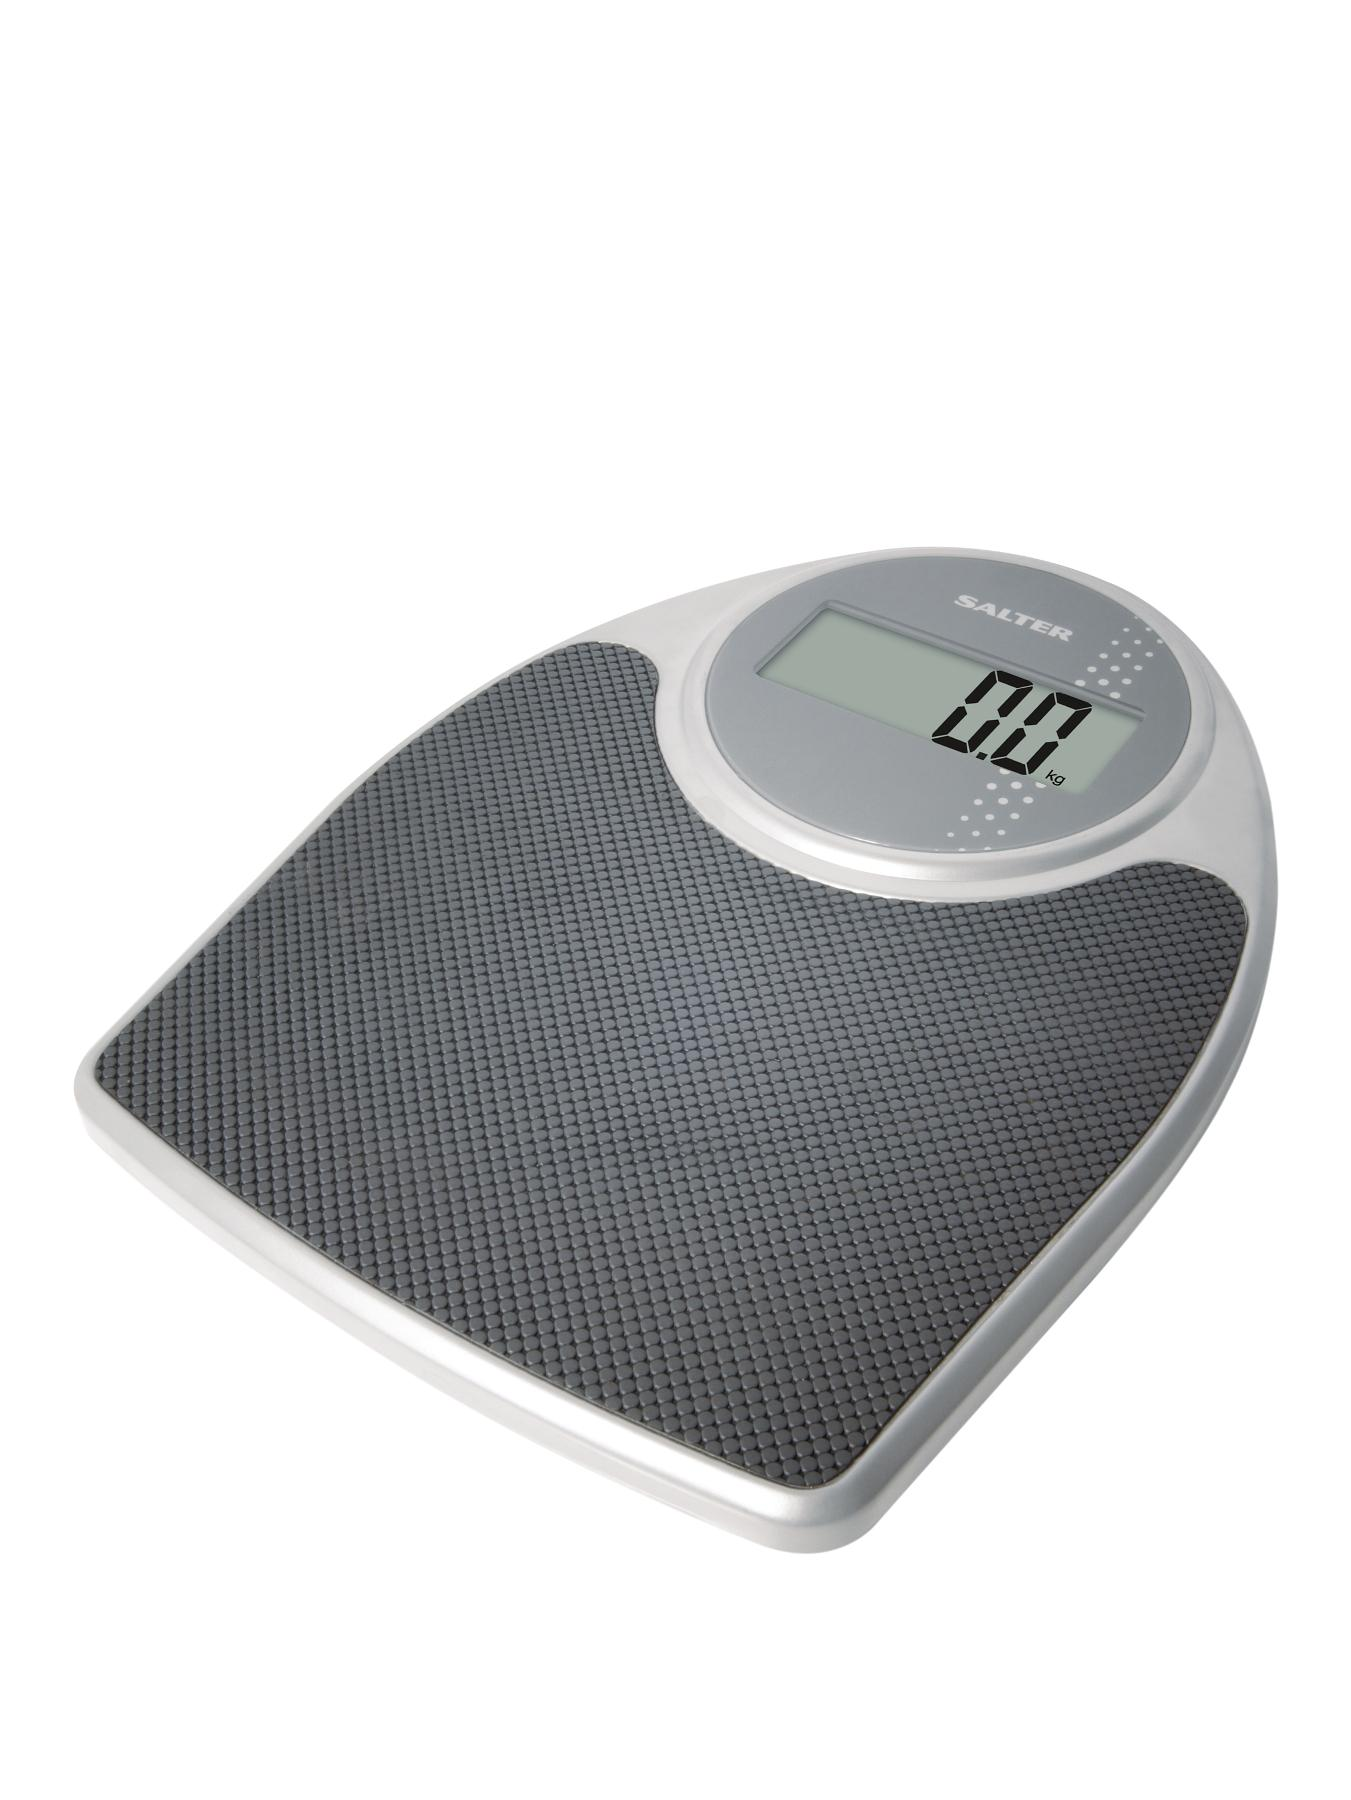 Digital Doctors Style Electronic Scale